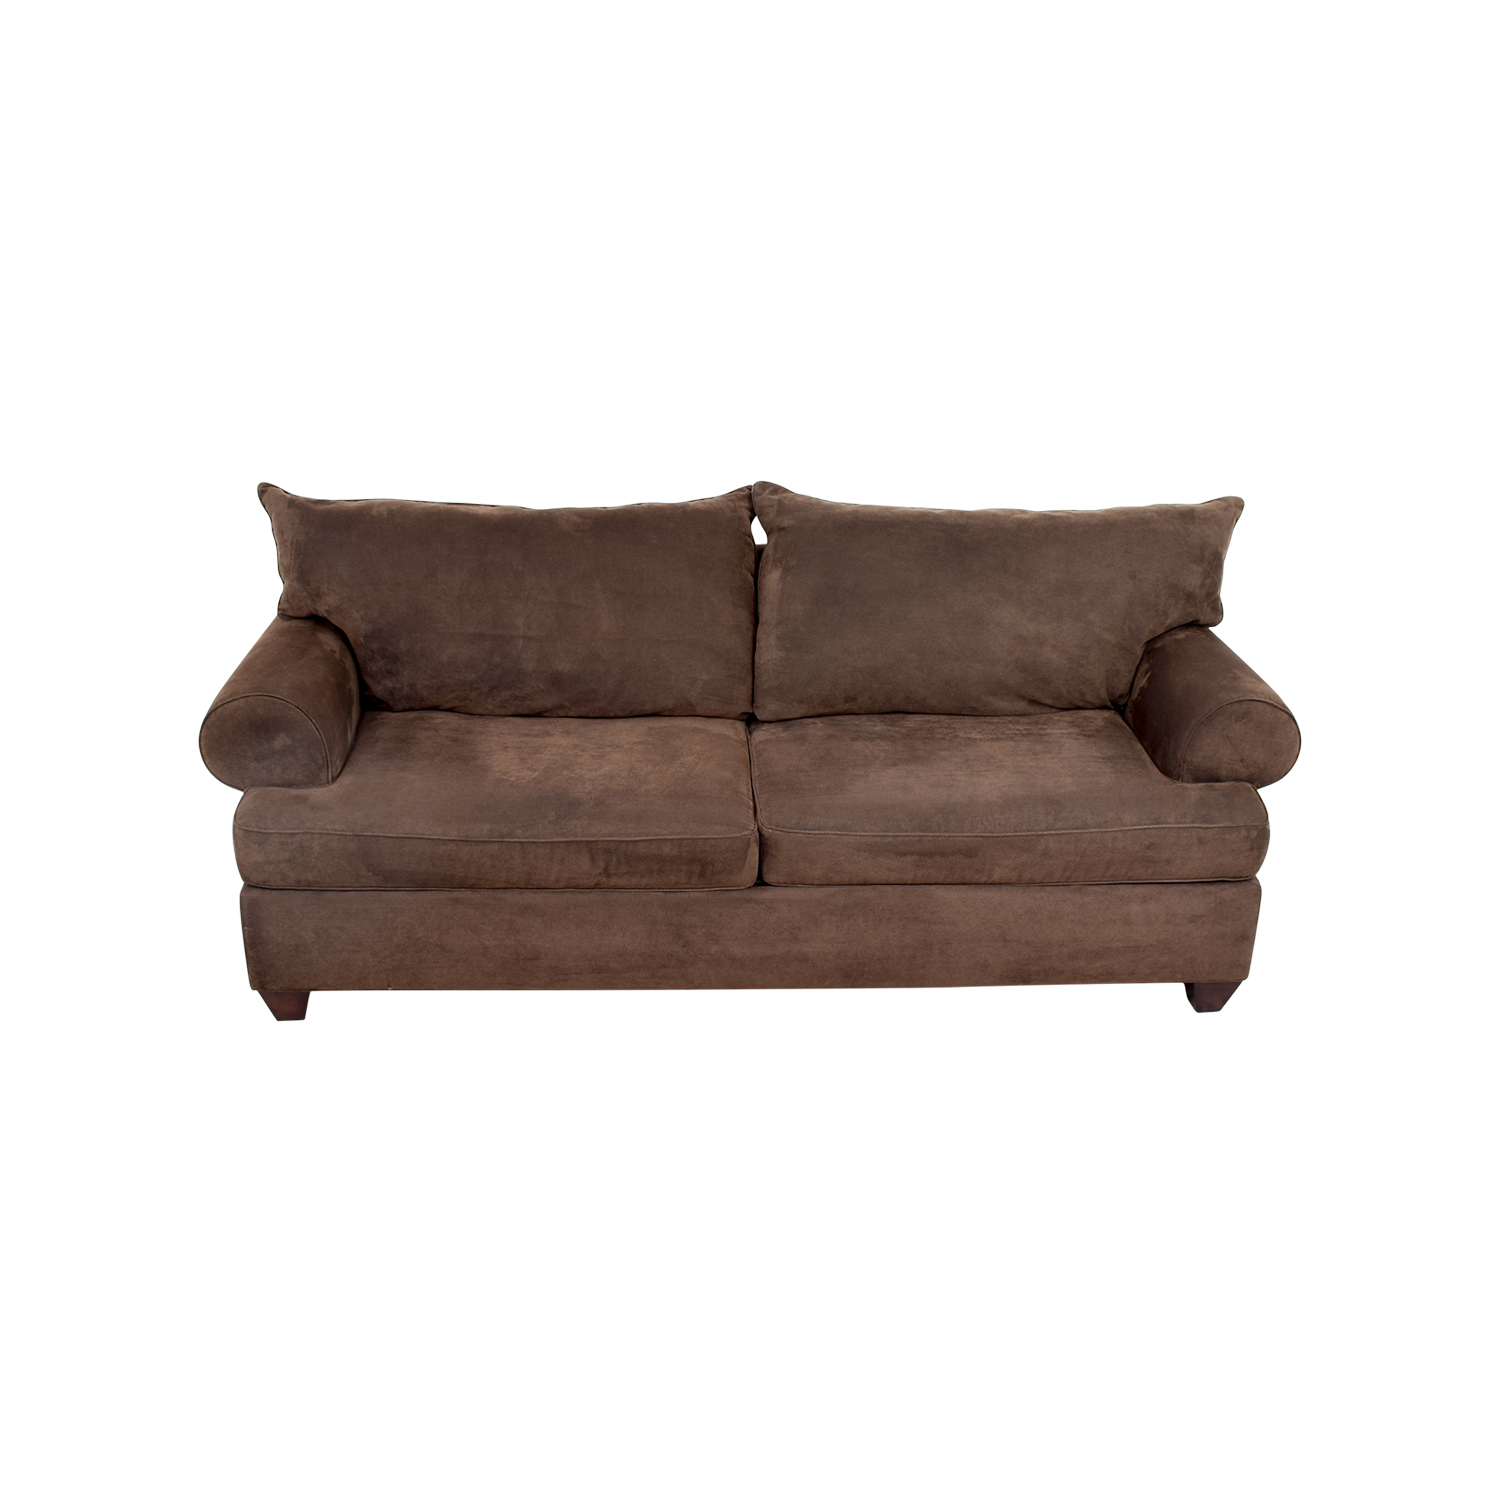 Groovy 47 Off Brown Corduroy Two Cushion Couch Sofas Creativecarmelina Interior Chair Design Creativecarmelinacom